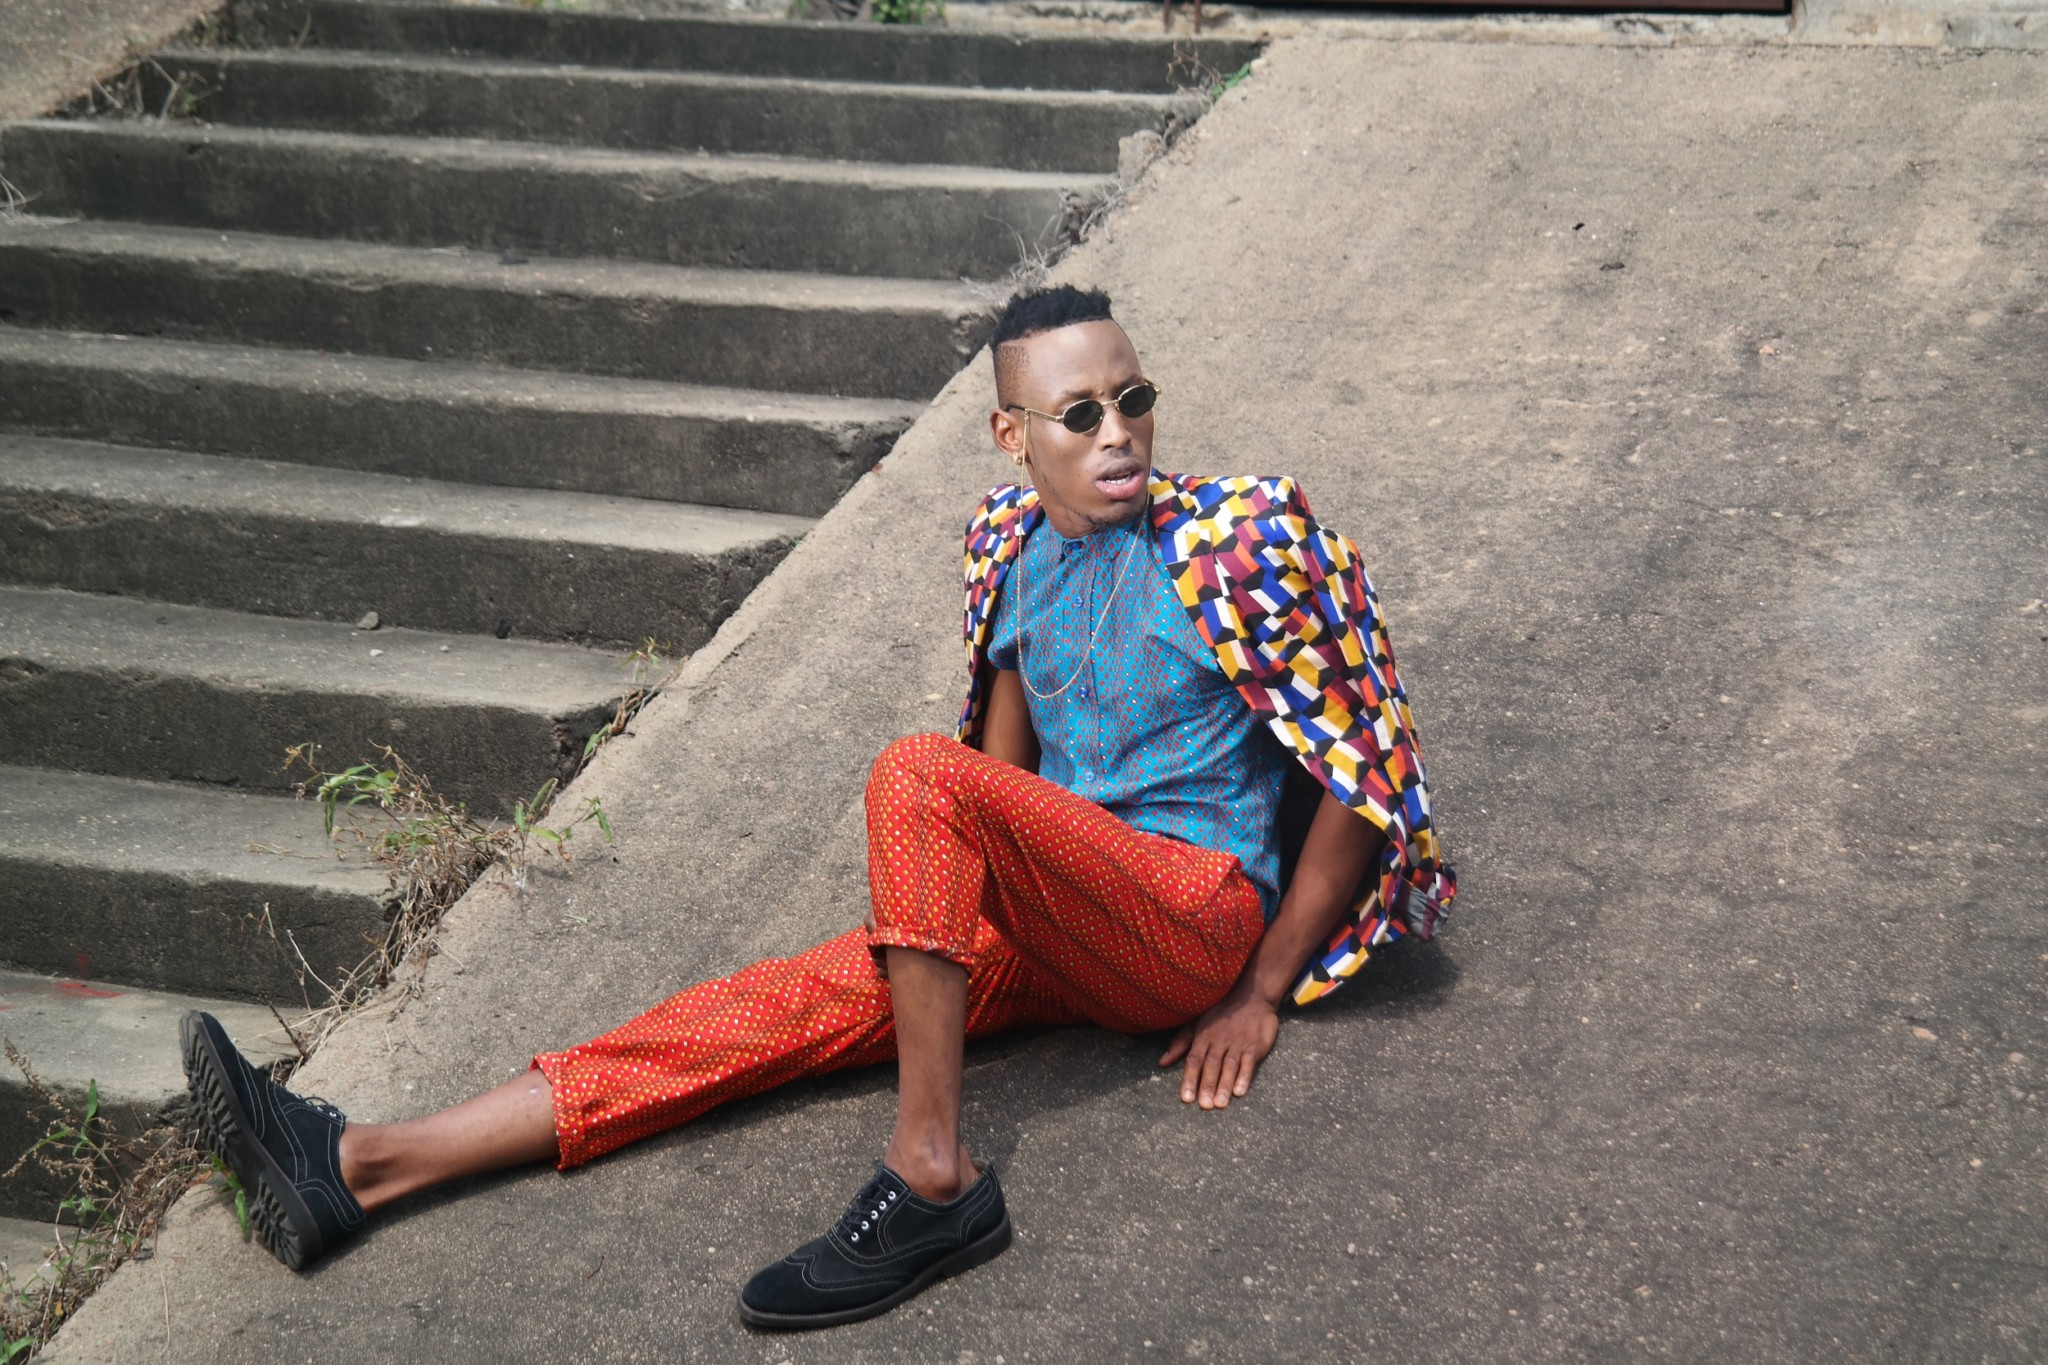 MR.2KAY IS QUIETLY WINNING AND SOARING HIGHERMR.2KAY IS QUIETLY WINNING AND SOARING HIGHER